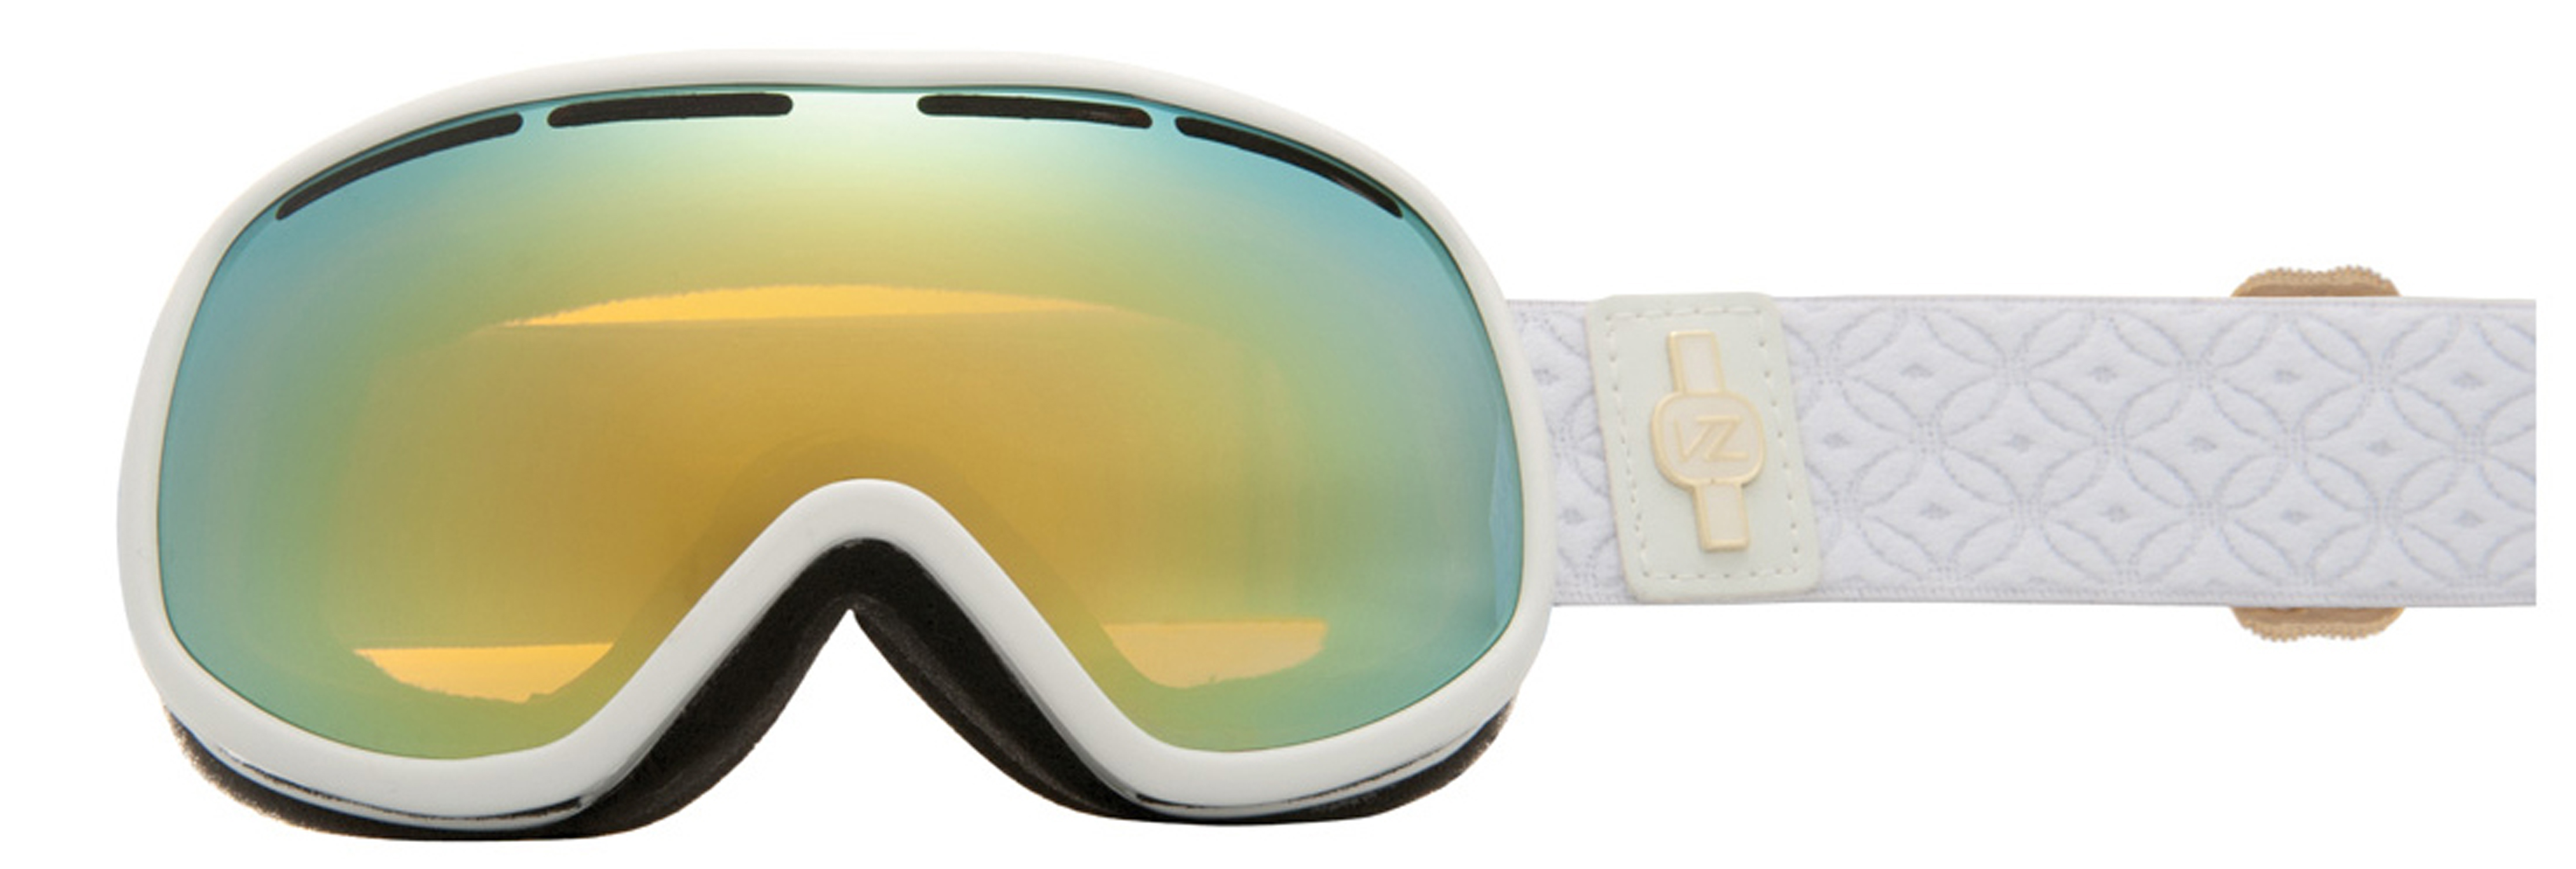 Snowboard The maximum in minimalism, this goggle accommodates a small to medium face size and is a ritual in oneness with the flow of the flurry universe... will assist you in finding your spiritual center of snow unity sending you down the blizzardy path of meaningful existence...Key Features of the Vonzipper Chakra Snowboard Goggles: Ergonomic frame design Thermopolyurethane injection molded frame 100% UV protection Dual cylindrical polycarbonate lens Barricade anti-fog and hard coated lens Polar fleece lined triple density face foam Dual adjustable strap Helmet compatible Microfiber goggle bag included - $100.00